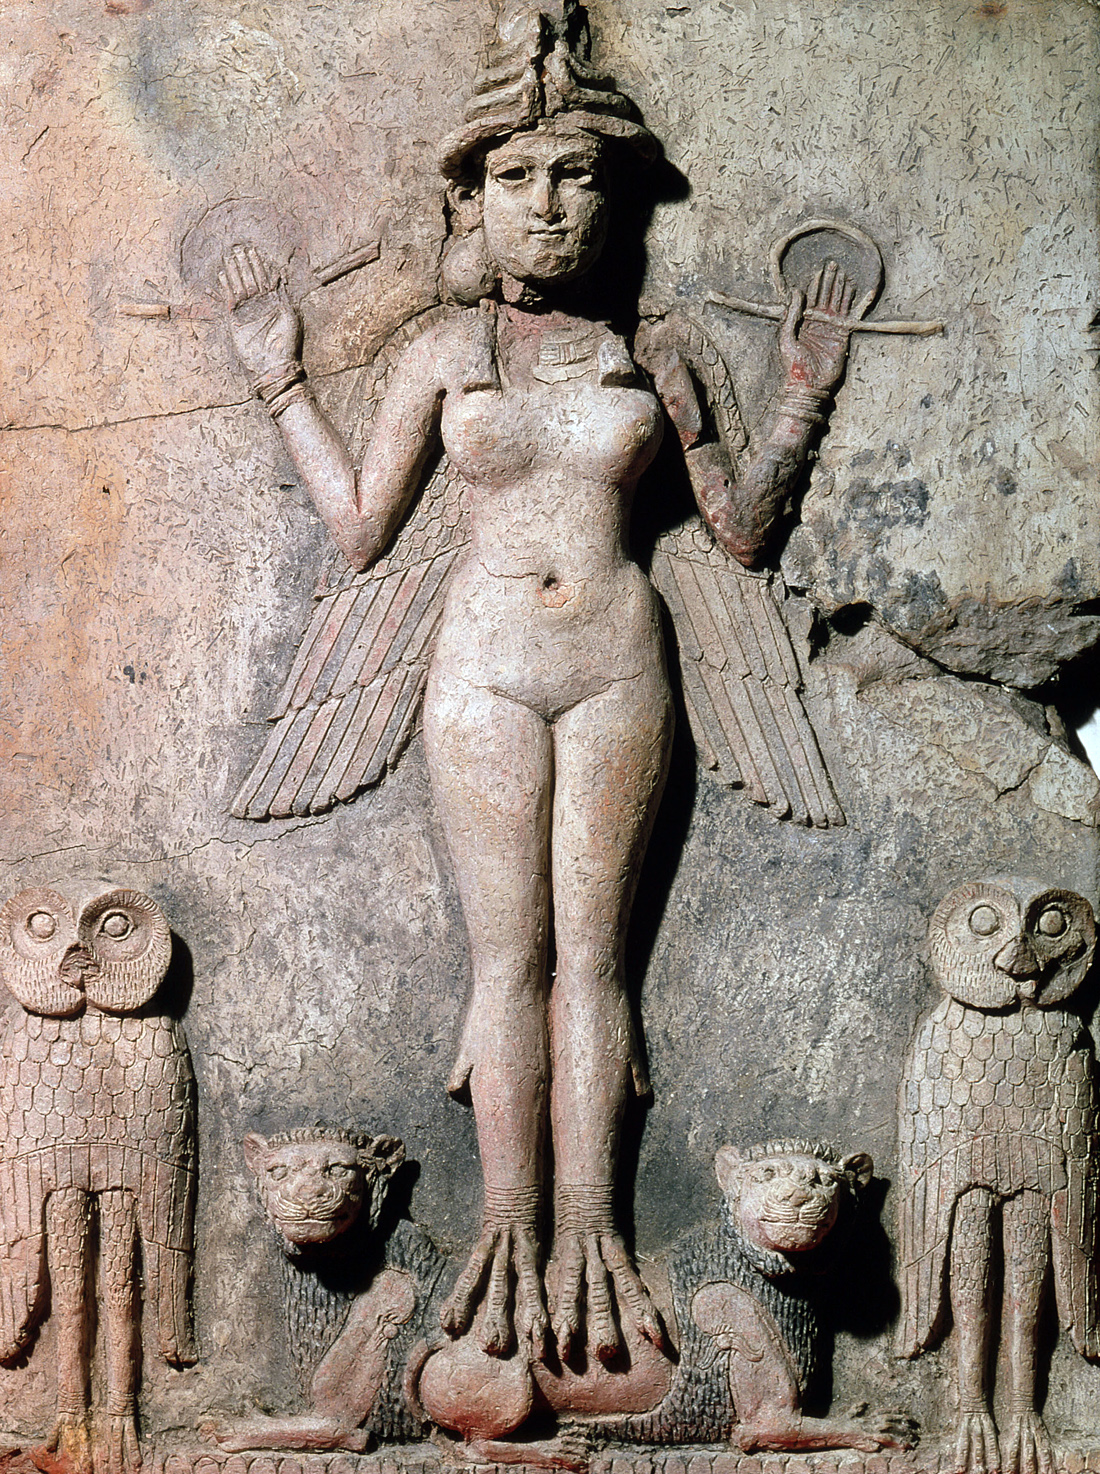 Ishtar, goddess of the heavens, love, and war, with crescent-moon crown and necklace, and lions and owls, Mesopotamia, c. 1775 BC. British Museum, London.